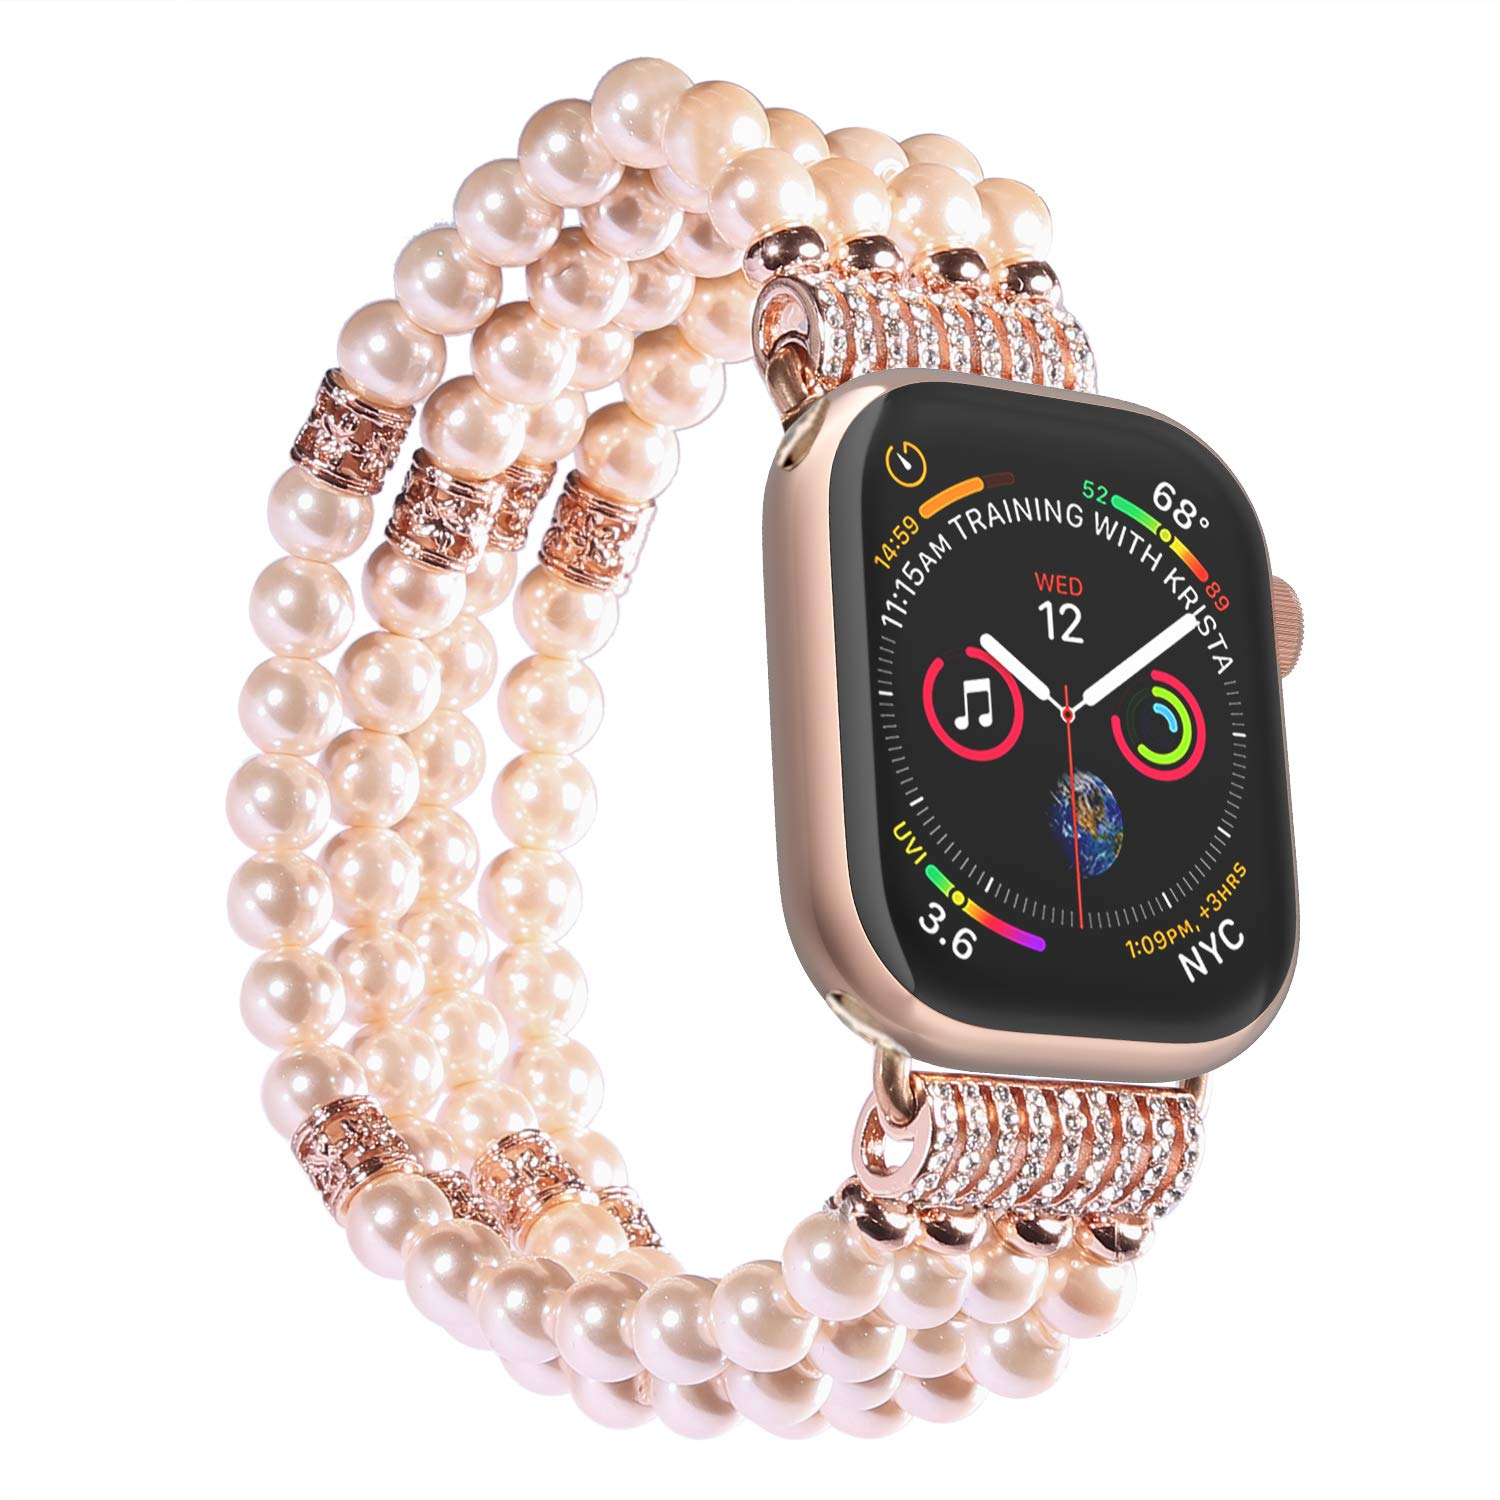 NEW Women's Apple Watch with pearl Band